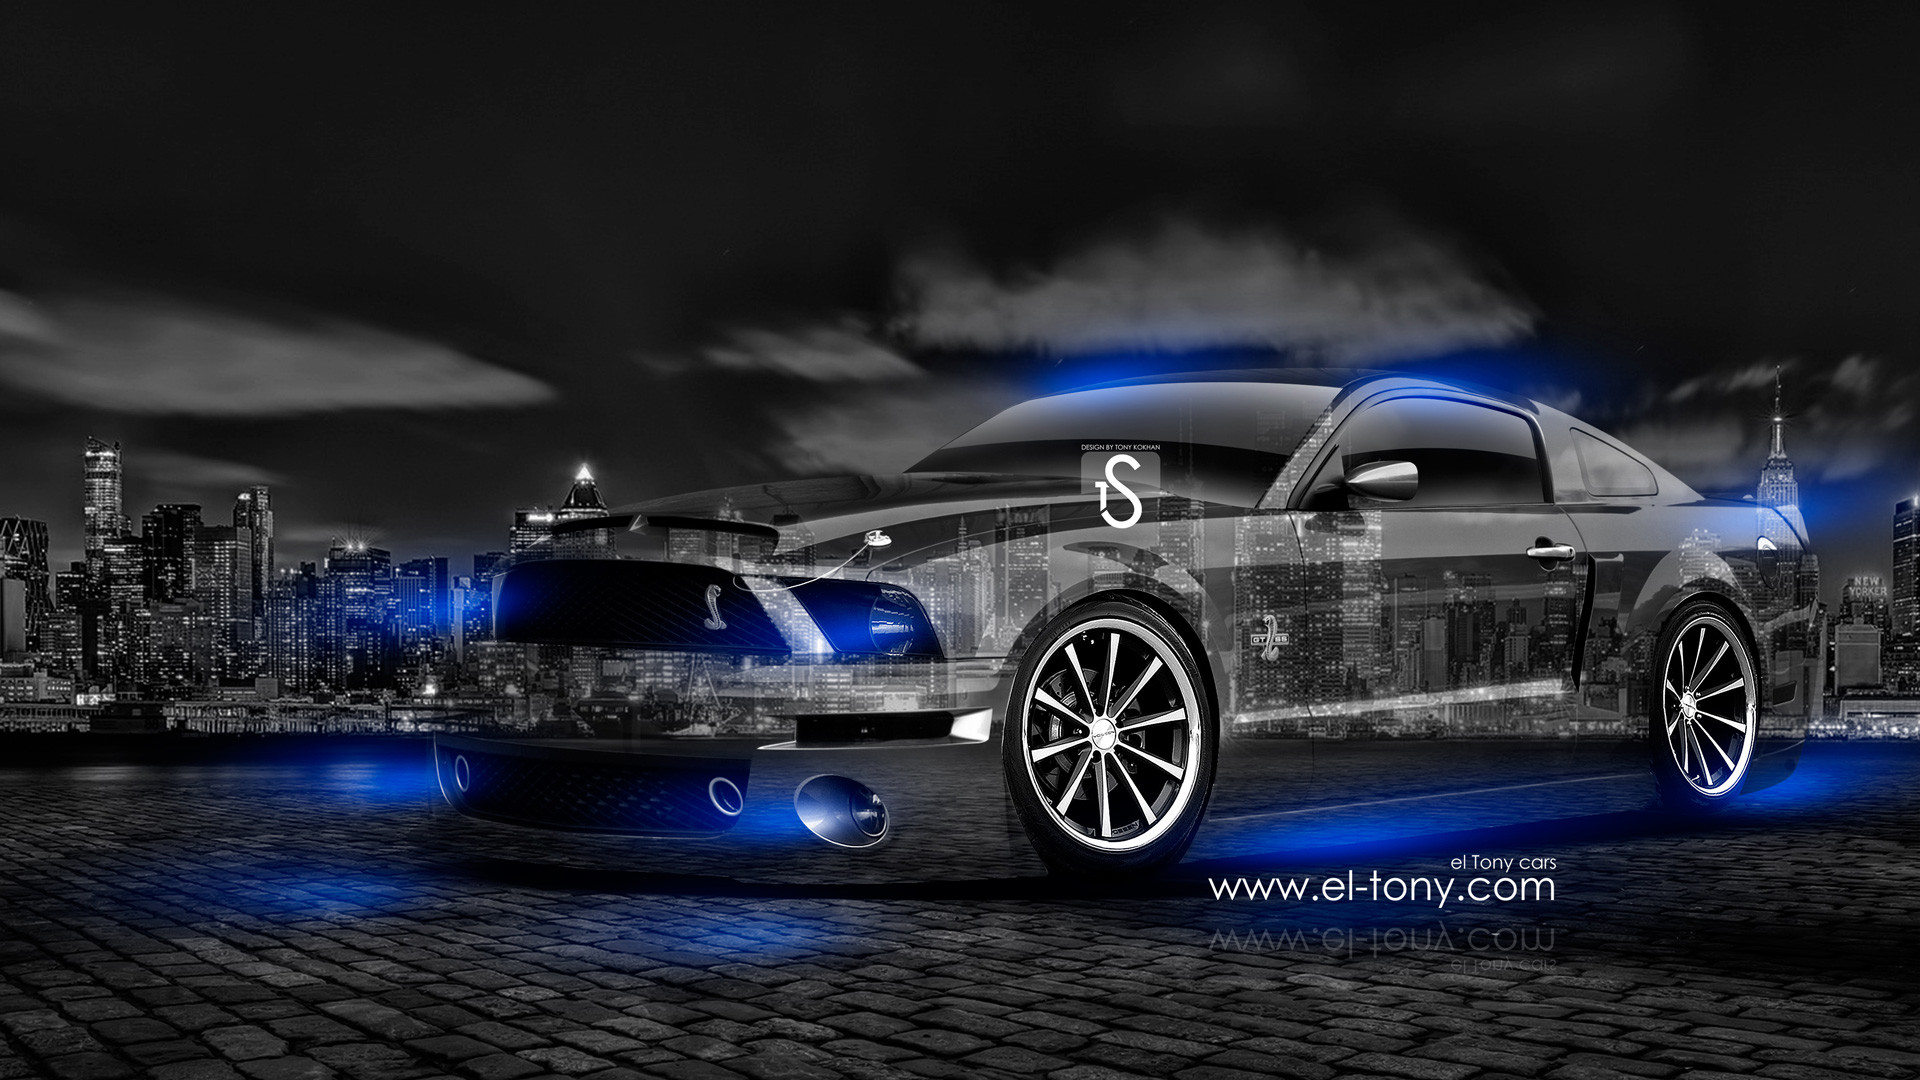 Download free wallpapers of cars